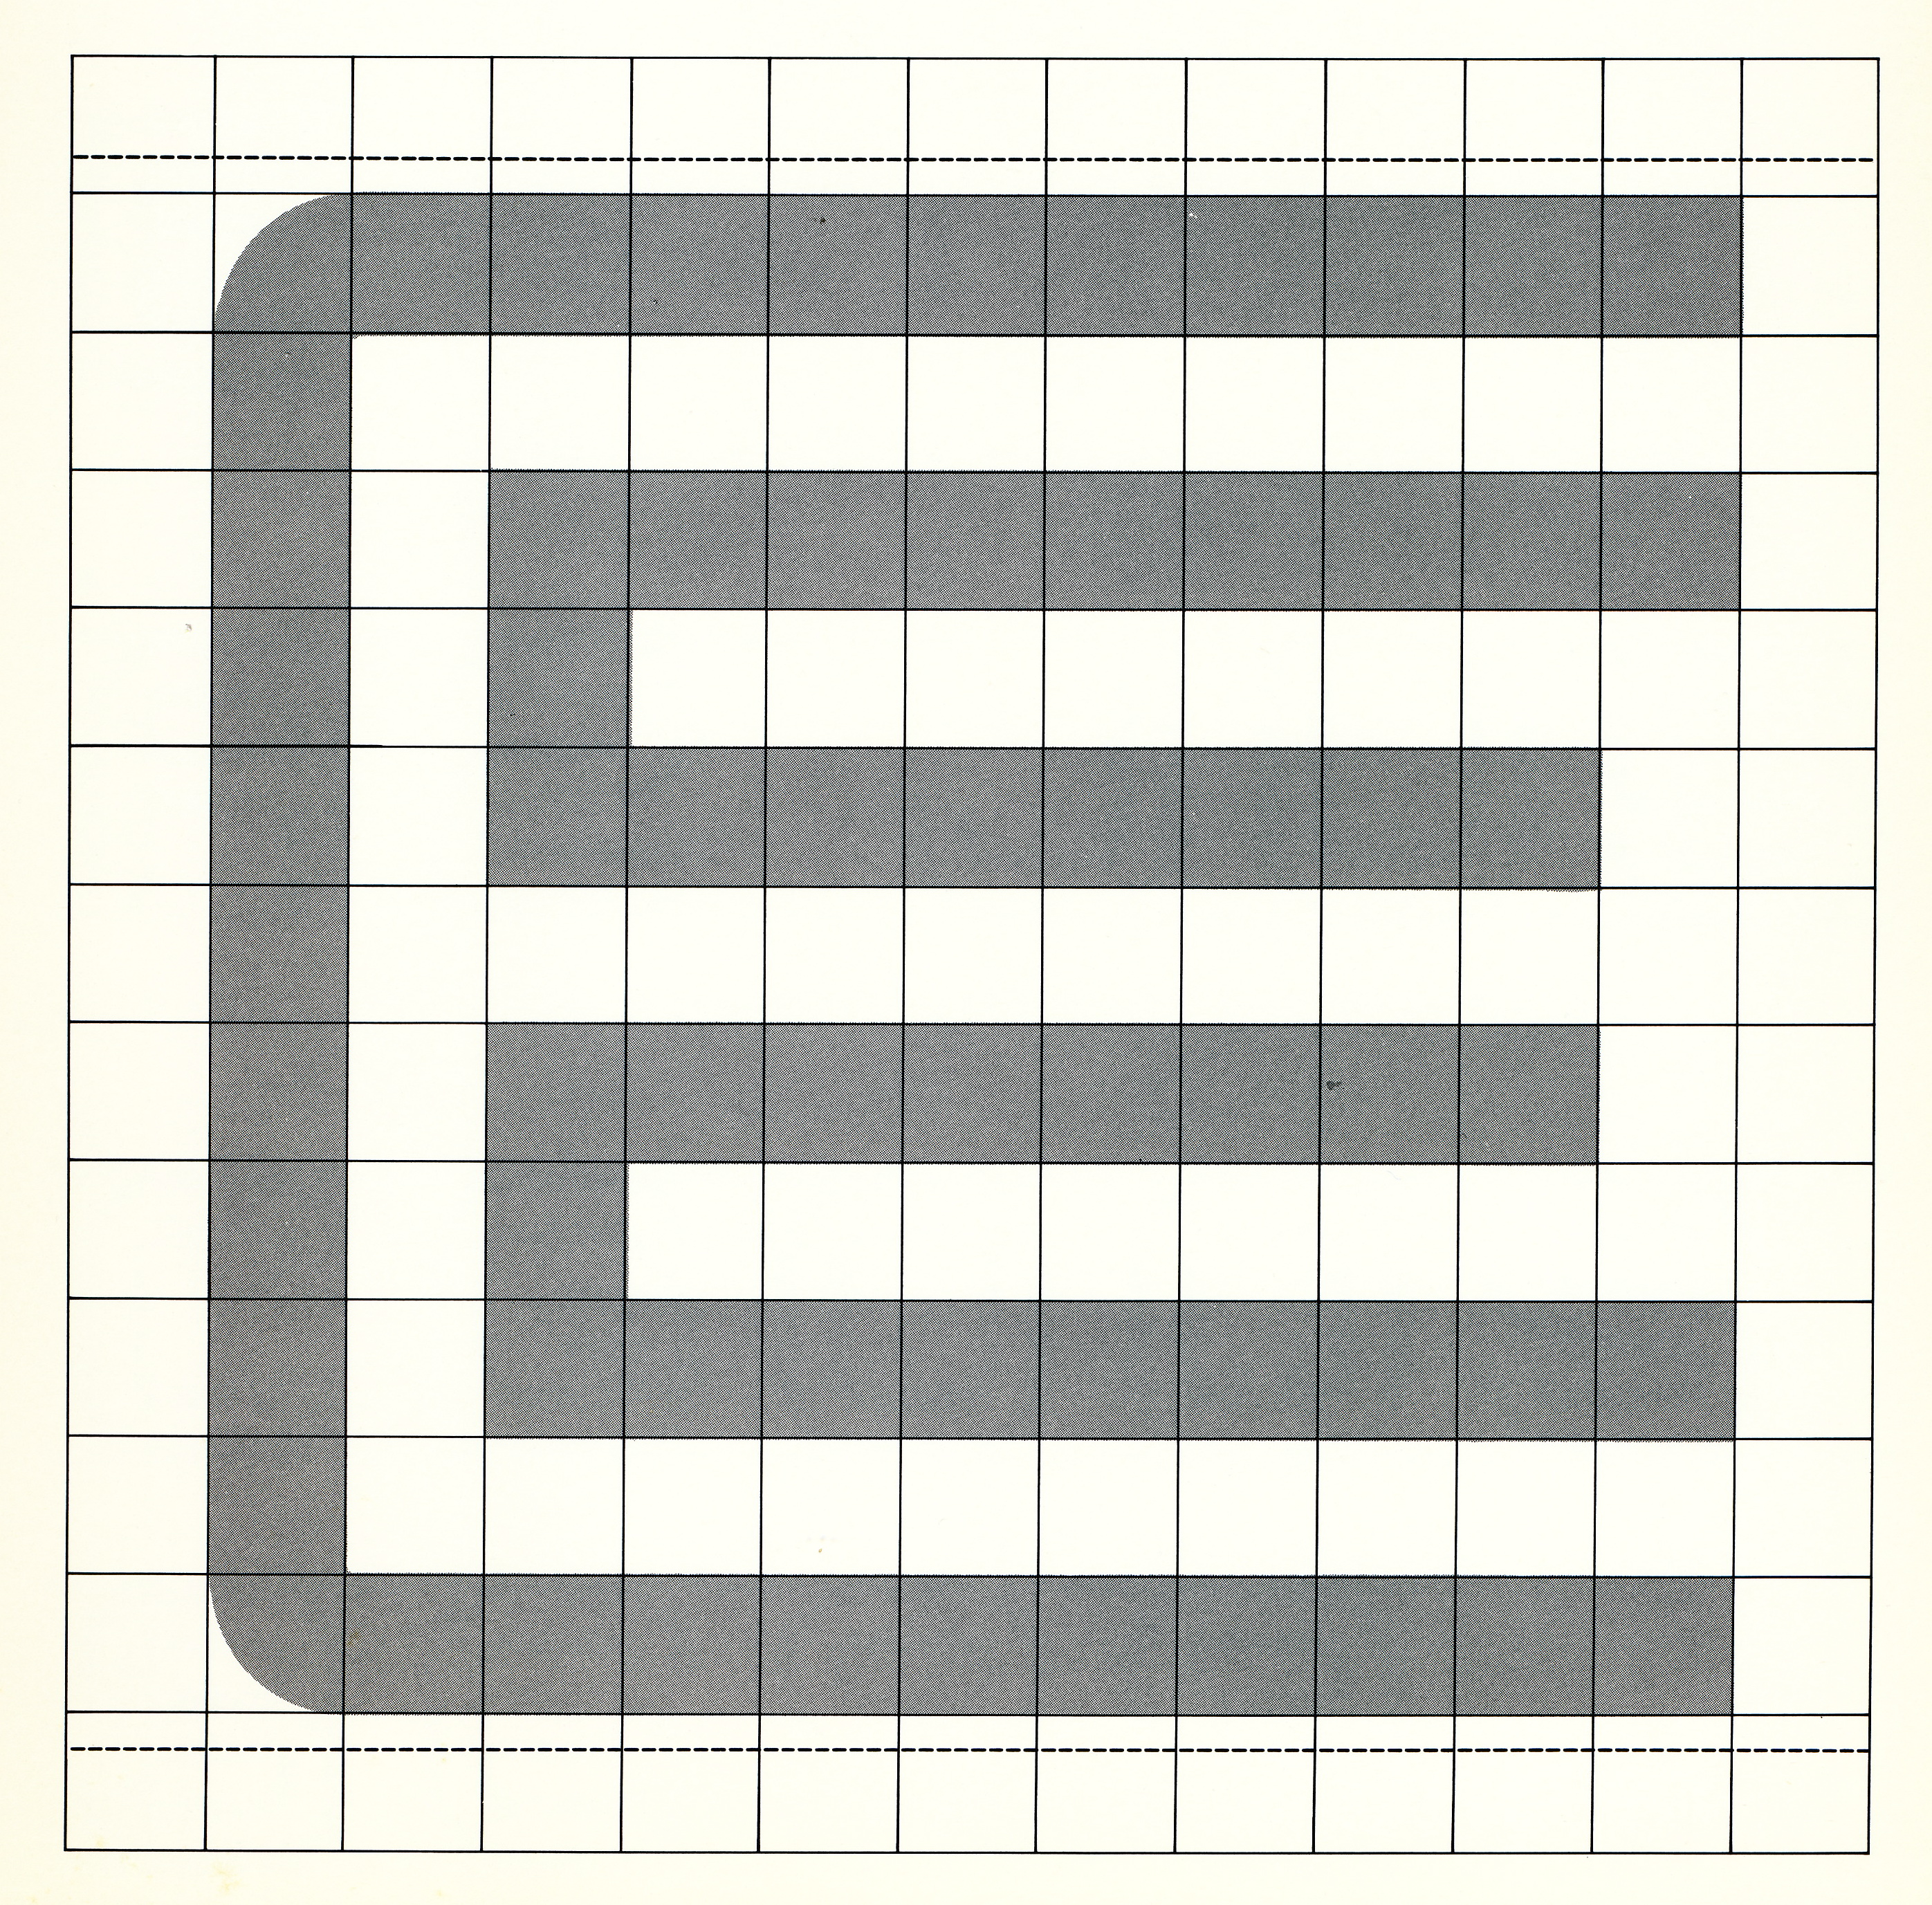 Sculpture of a large letter E on a wall.